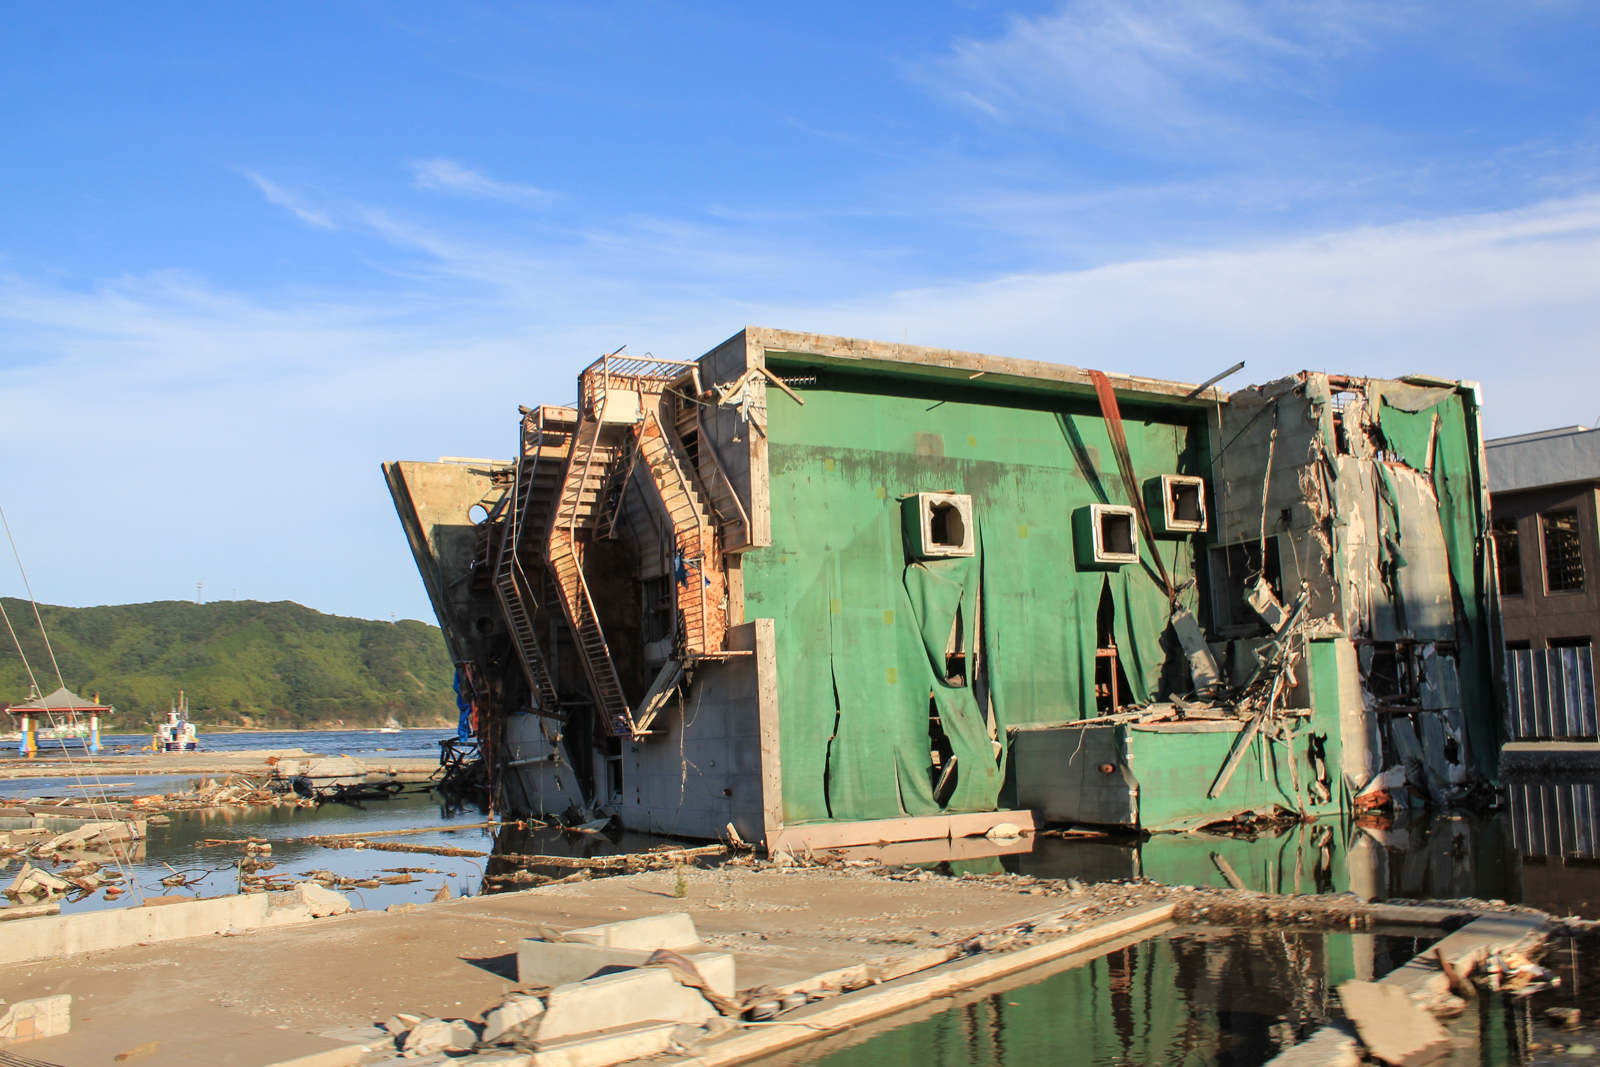 Building with green roof lies on its side in Onagawa after the tsunami of 2011